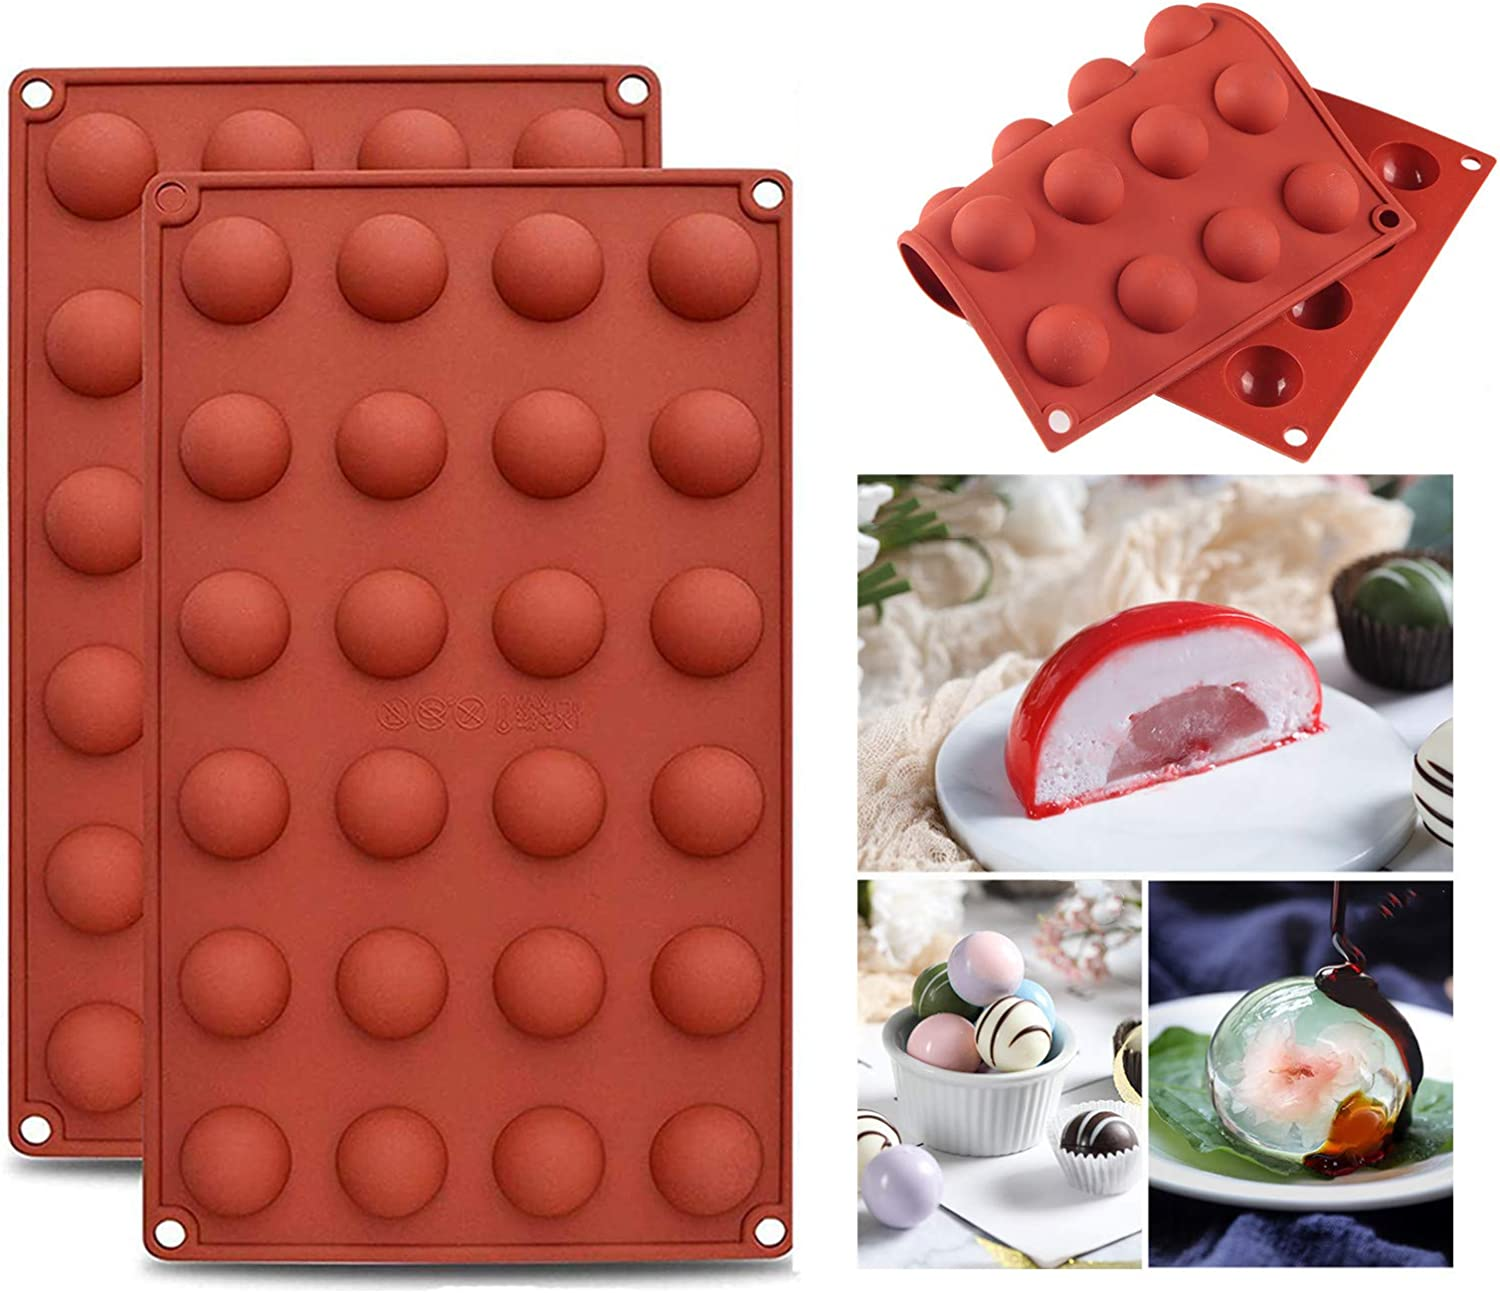 Luckgy 2PCS Silicon Chocolate Mold Mini Hemisphere Half Round Shapes 24 holes For Candy, Chocolate, Jello, Jelly, Gummy, Non-Stick 2 Packs Round Molds, Semicircle Bakeware Set.